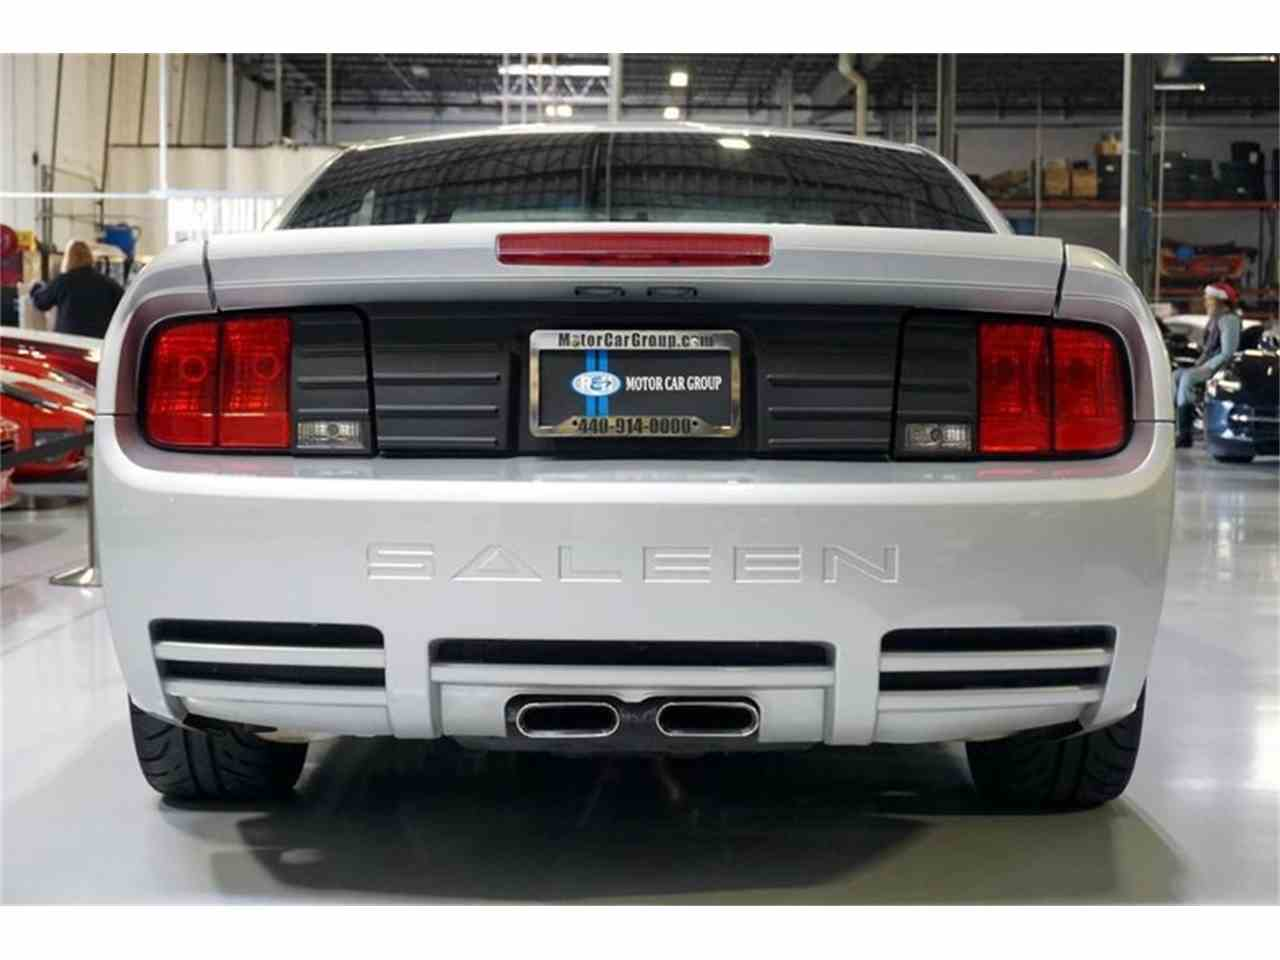 Large Picture of 2006 Ford Mustang located in Ohio - $34,990.00 Offered by R&H Motor Car Group - MC5Z